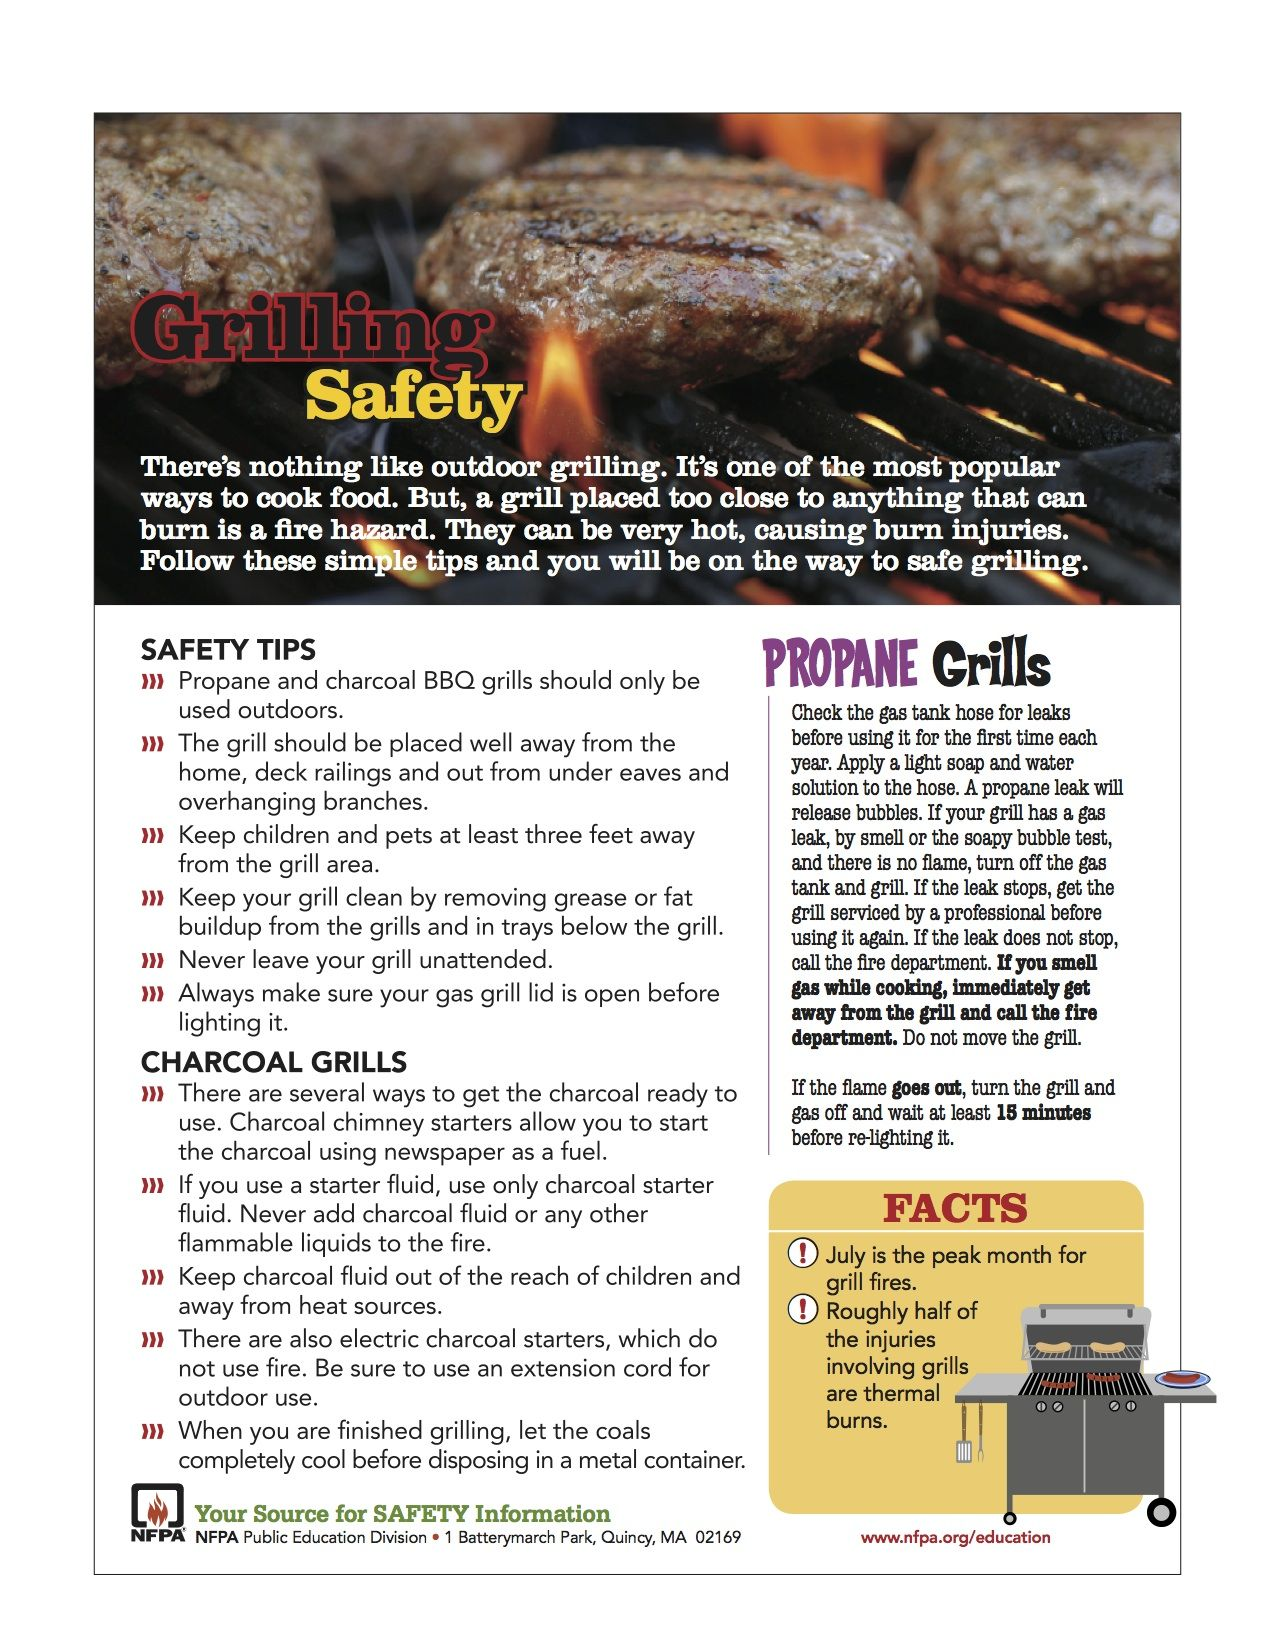 Grill safety for propane and charcoal cooking grilling